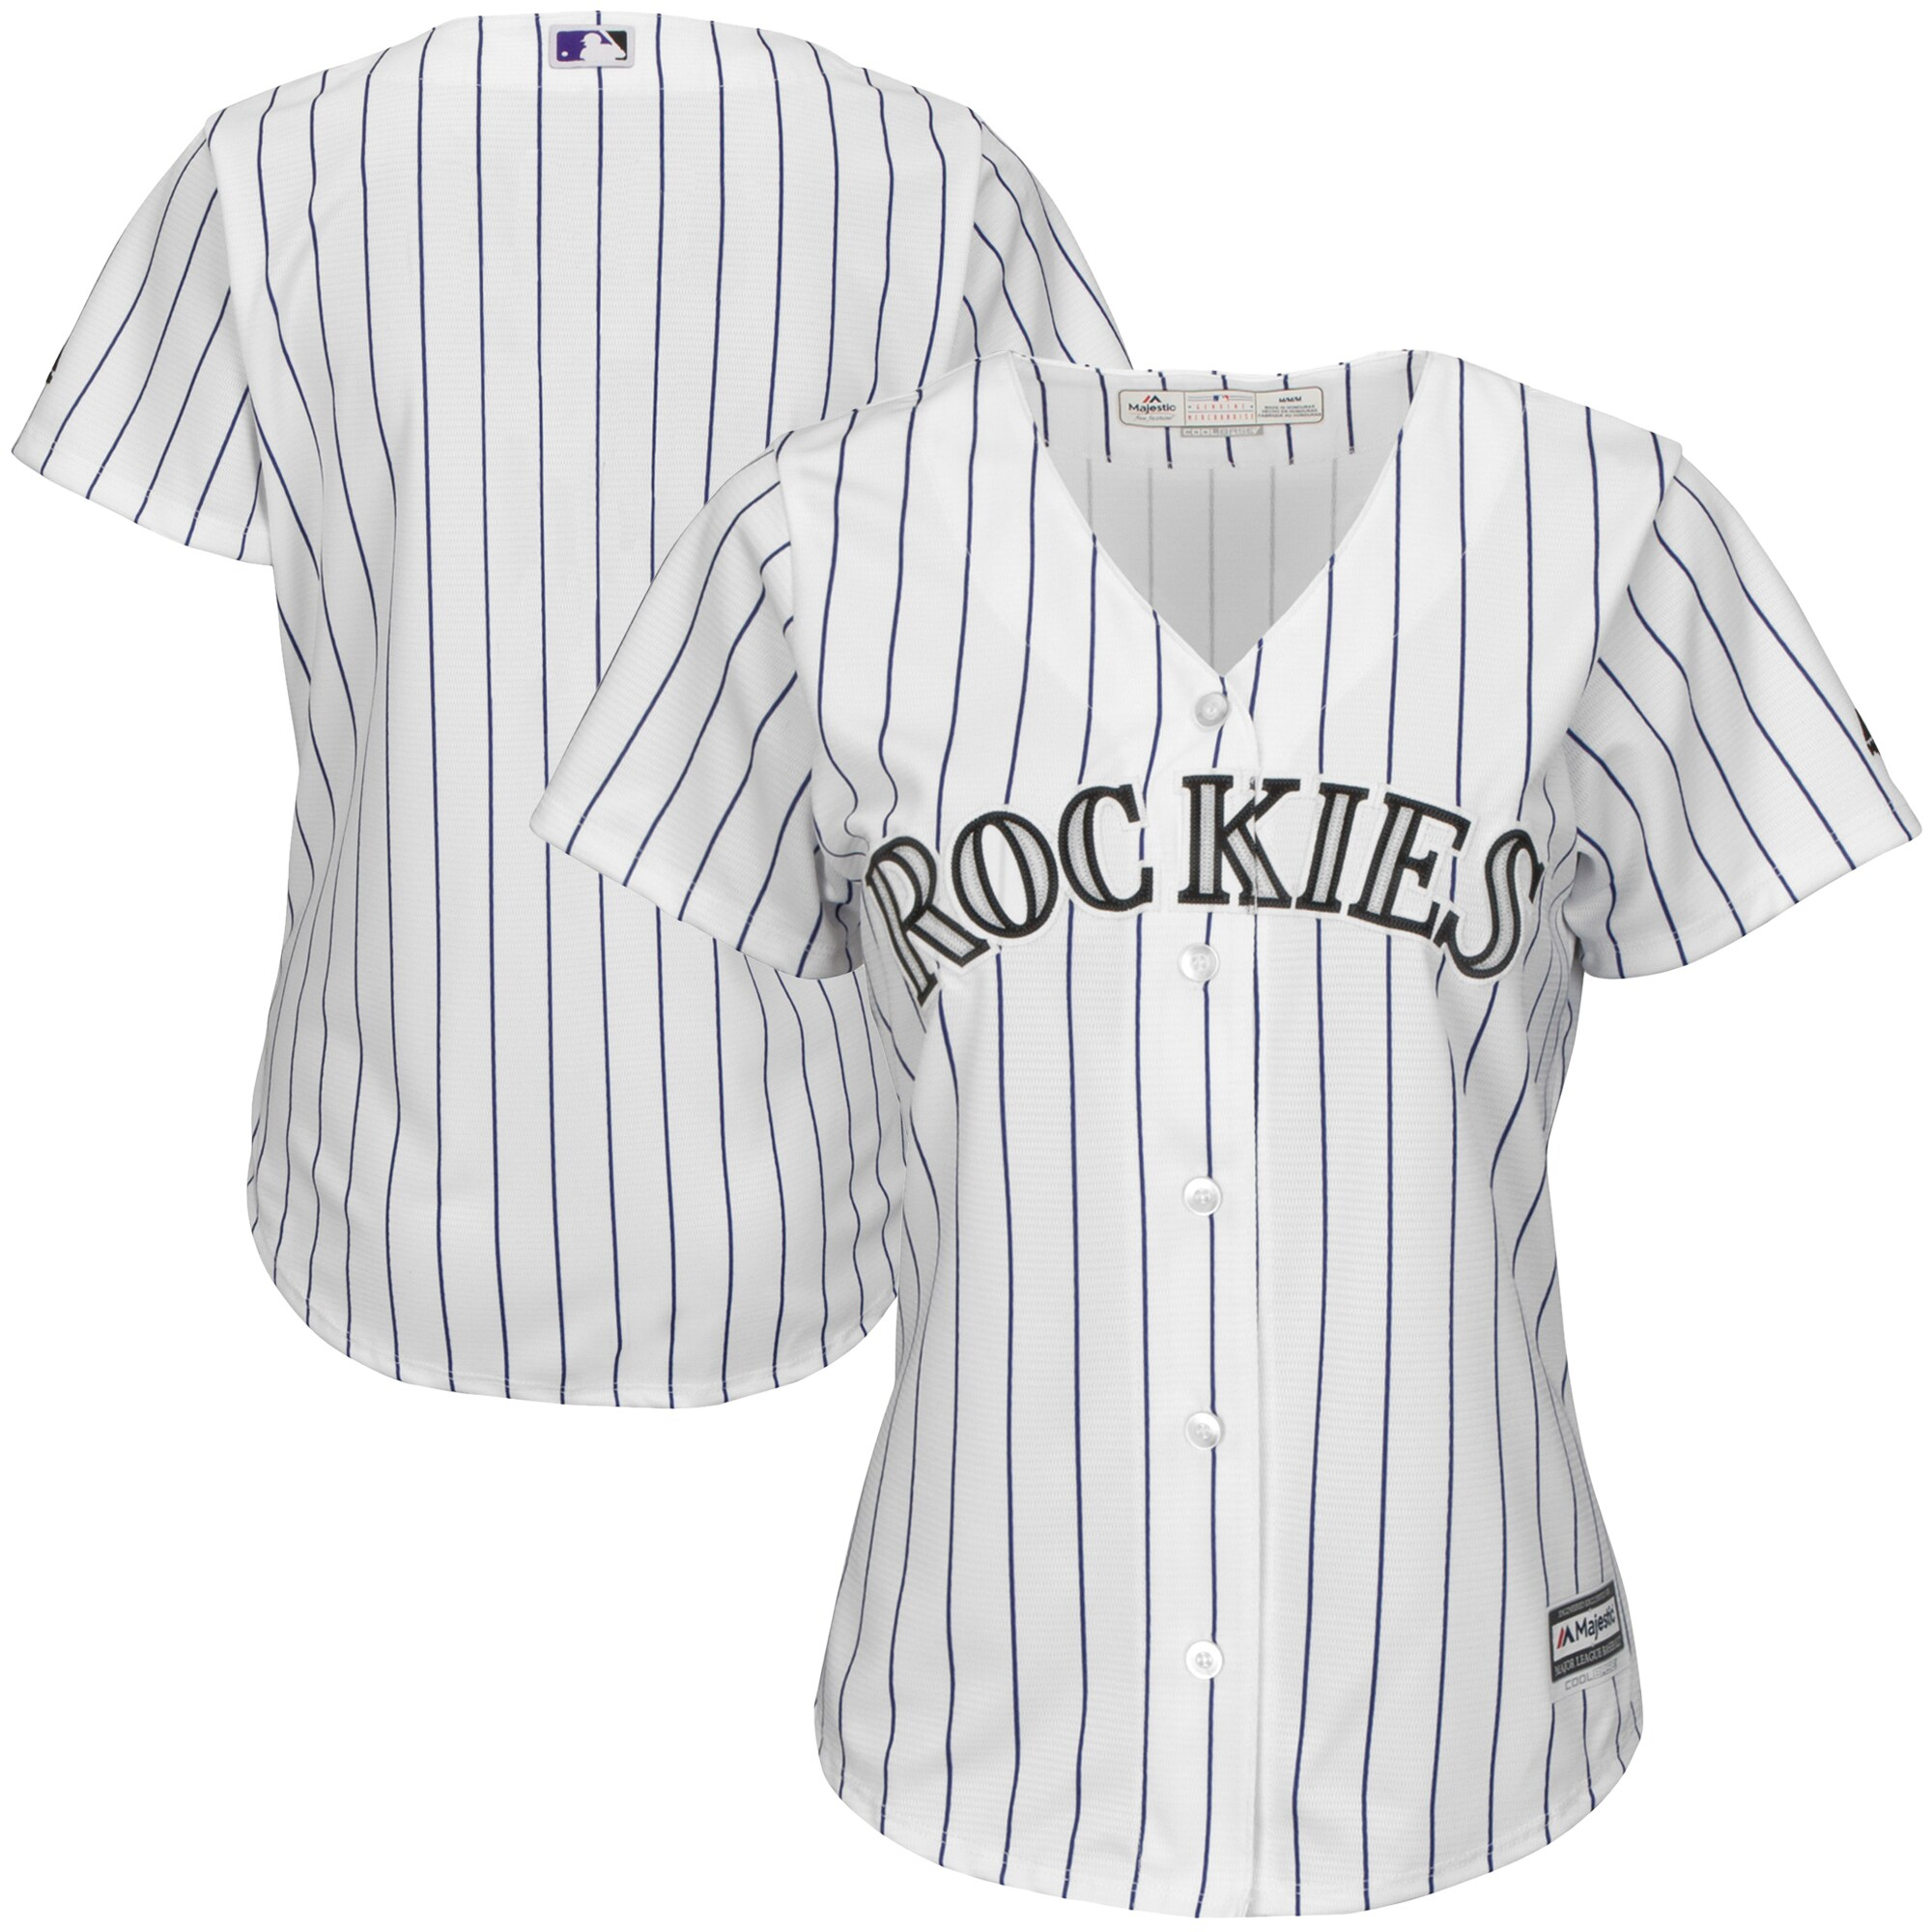 Colorado Rockies Majestic Women's Home Cool Base Team Jersey - White/Purple